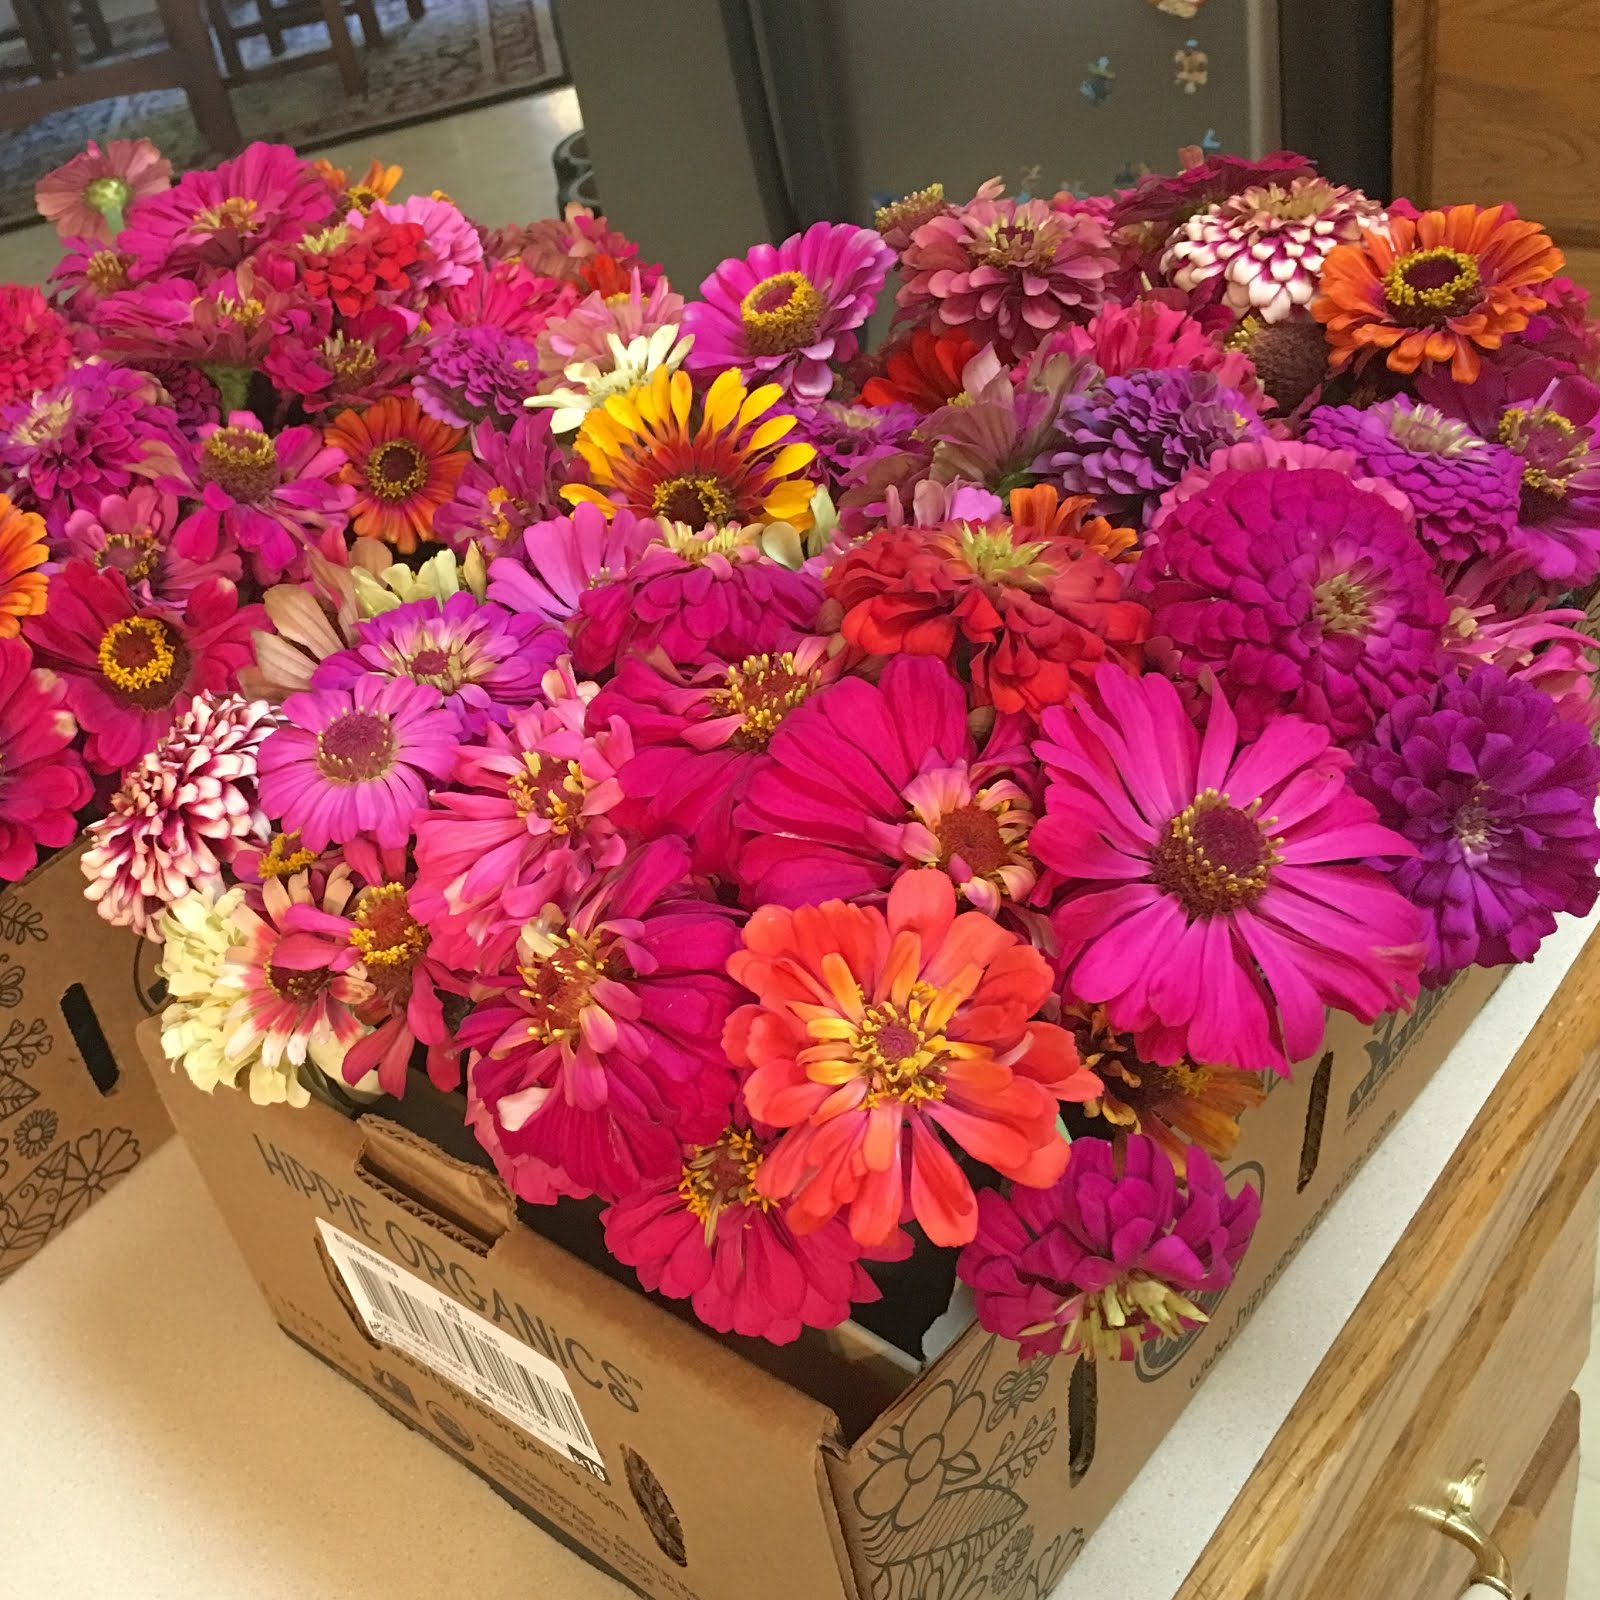 Latest Zinnia Donation of 14 bouquets